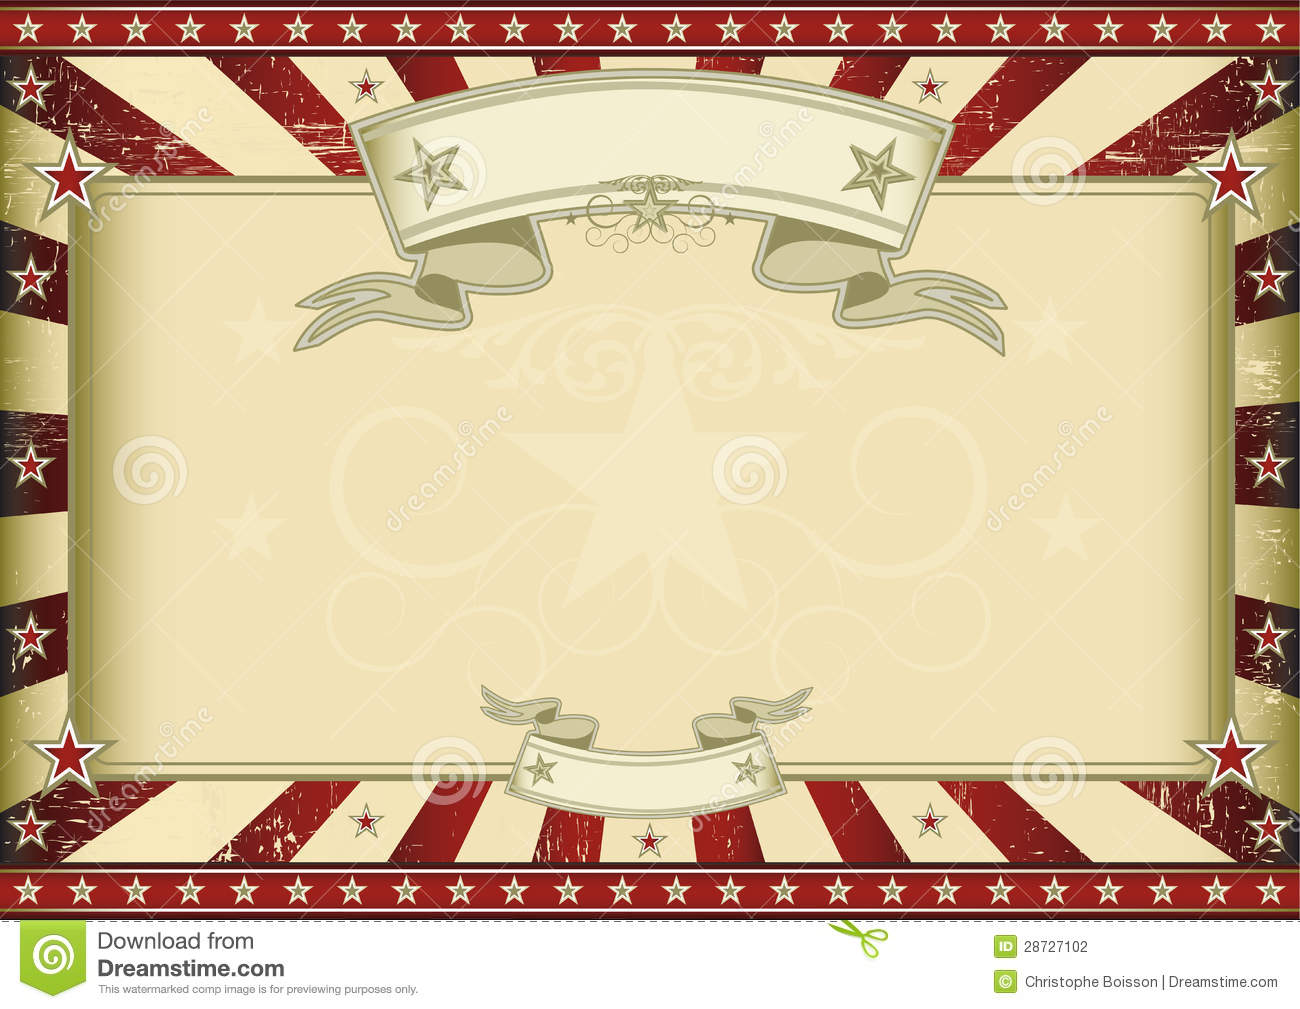 Circus Invitation is awesome invitations sample